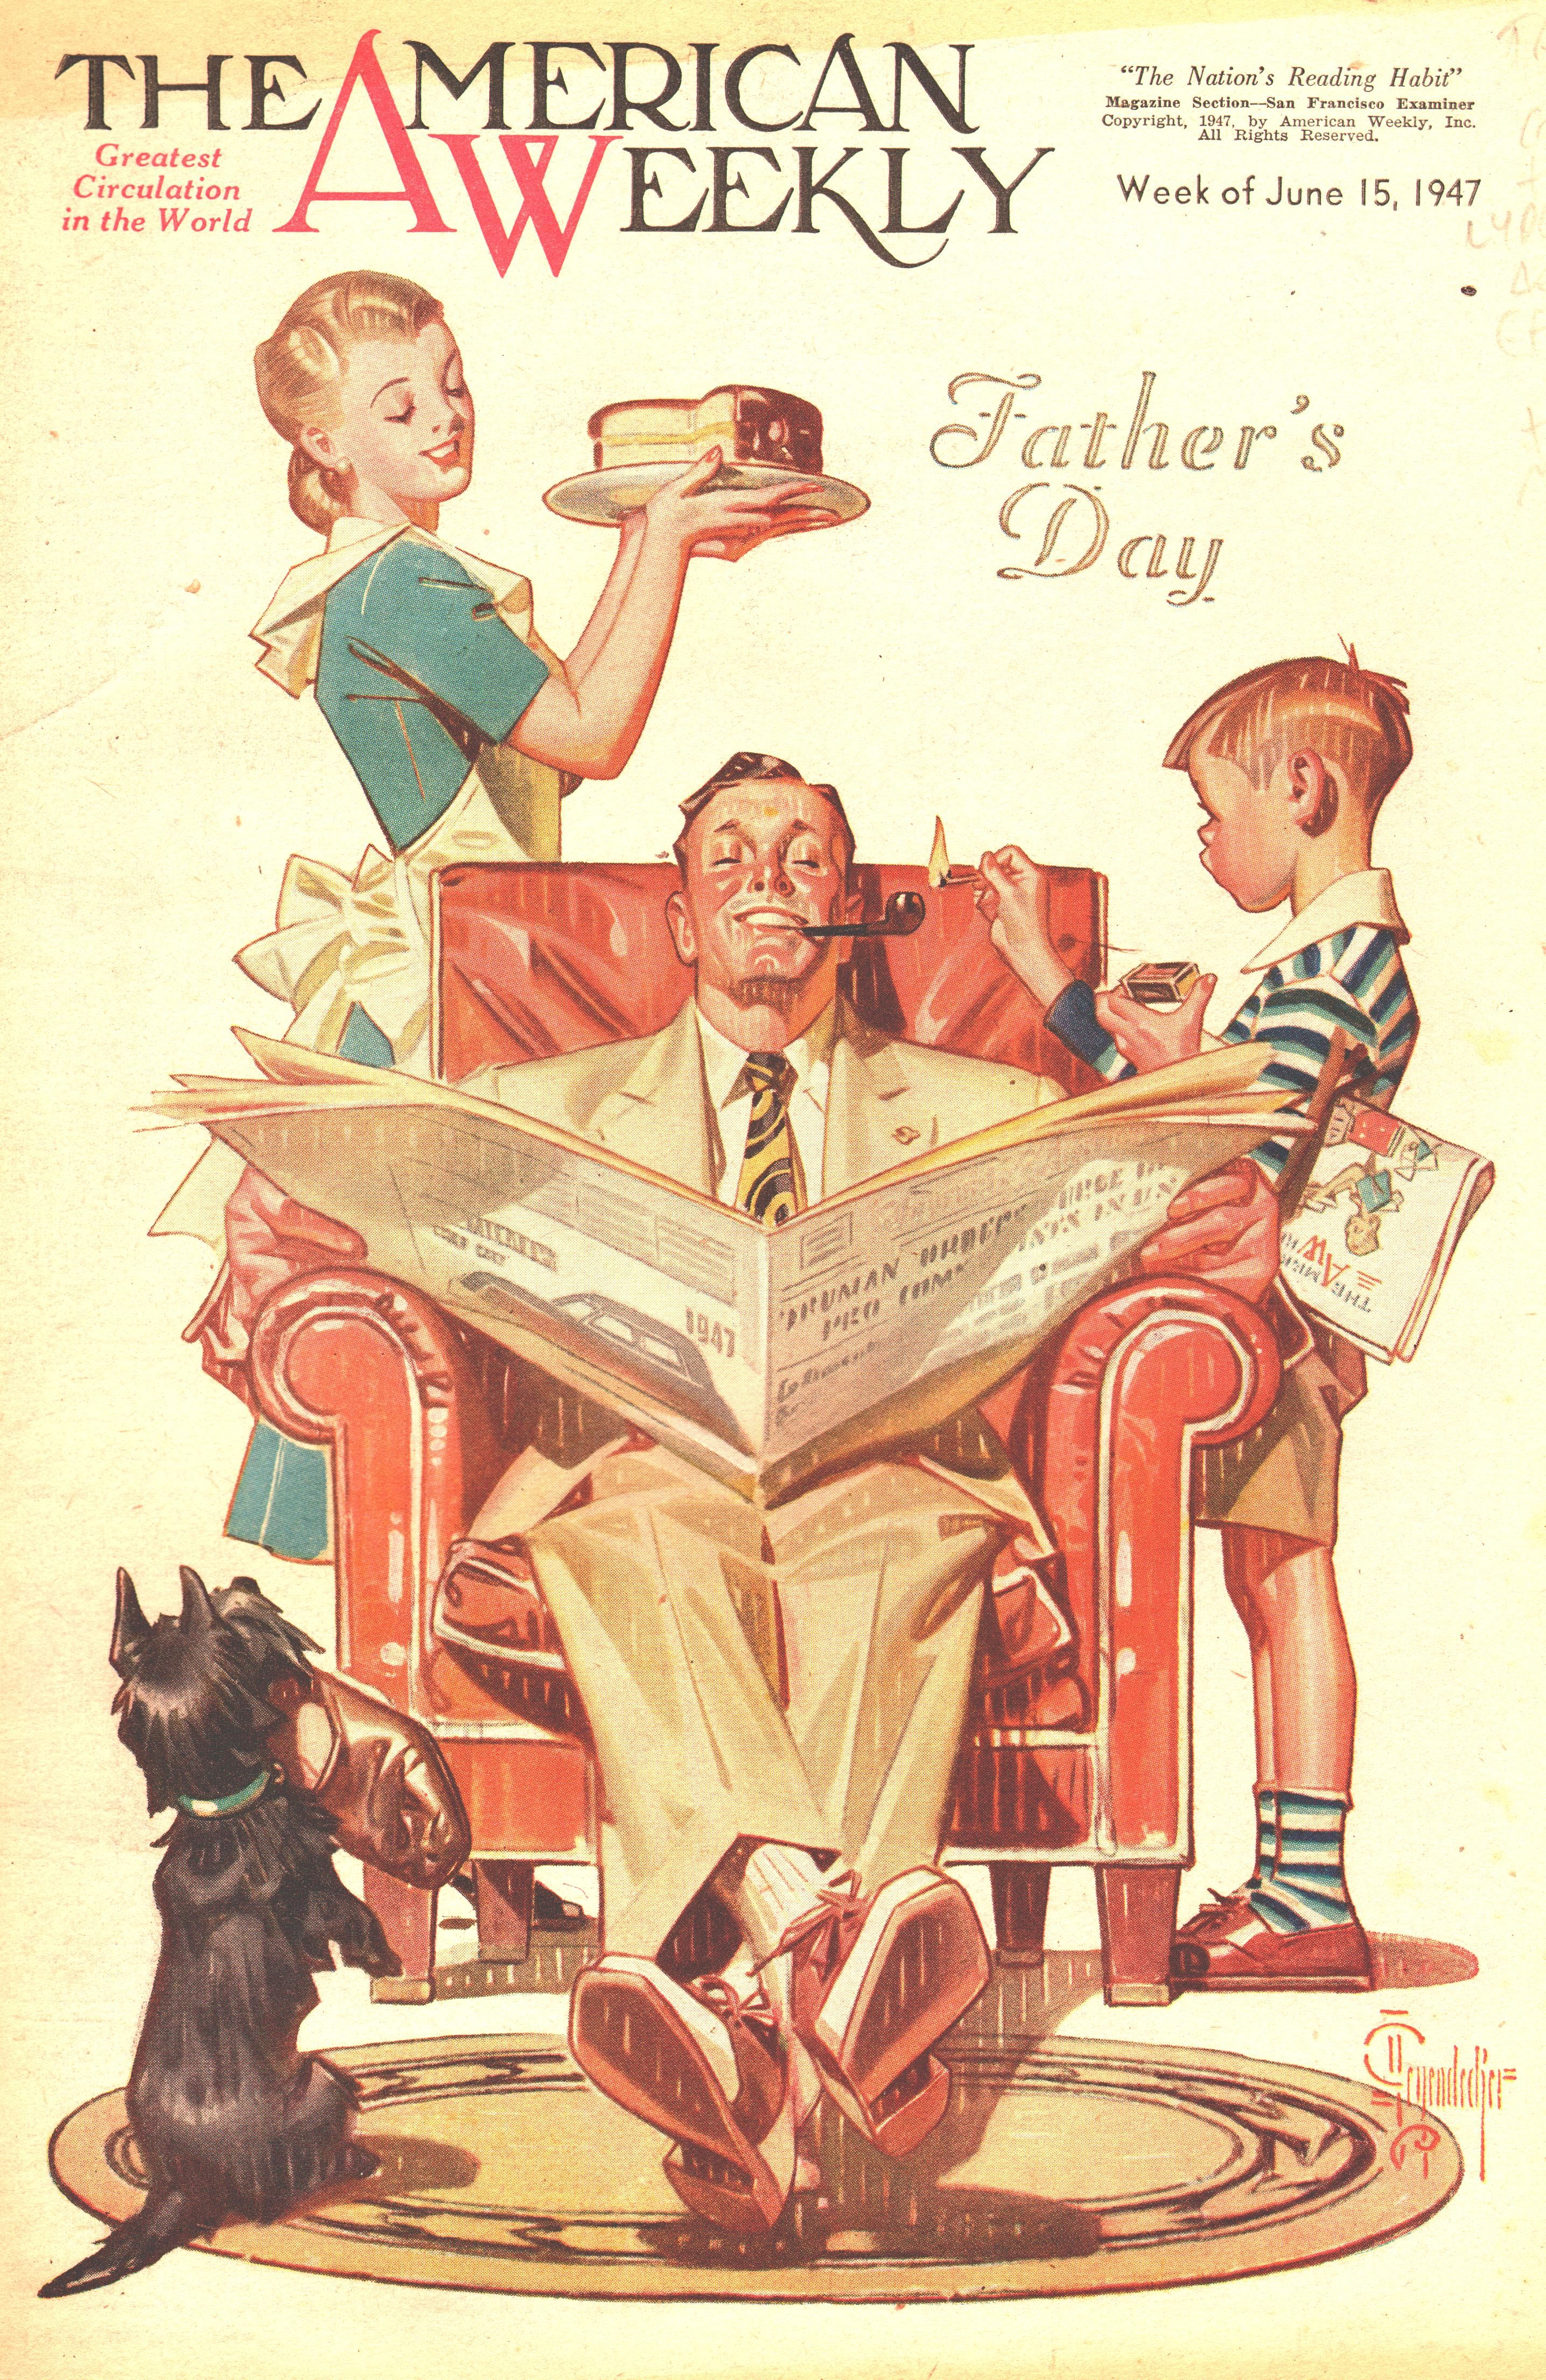 Cover from The American Weekly June 15, 1947